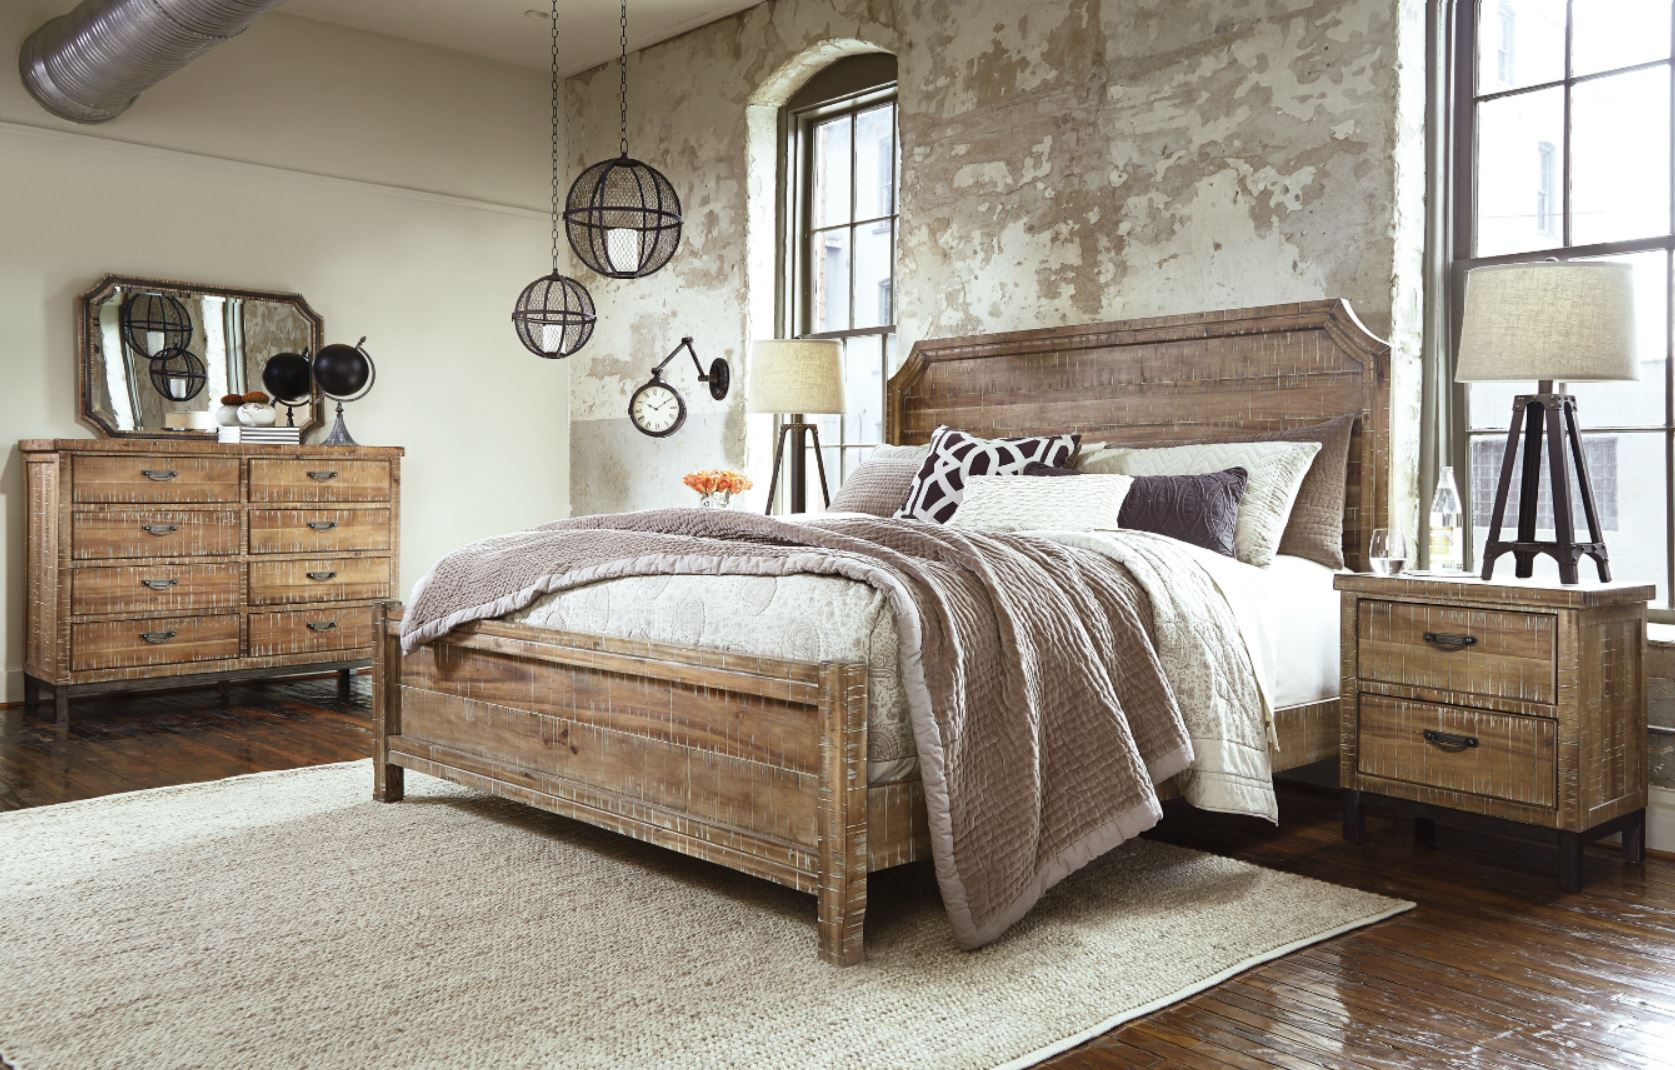 style file san francisco rustic furniture creates reclaimed retreat. Black Bedroom Furniture Sets. Home Design Ideas